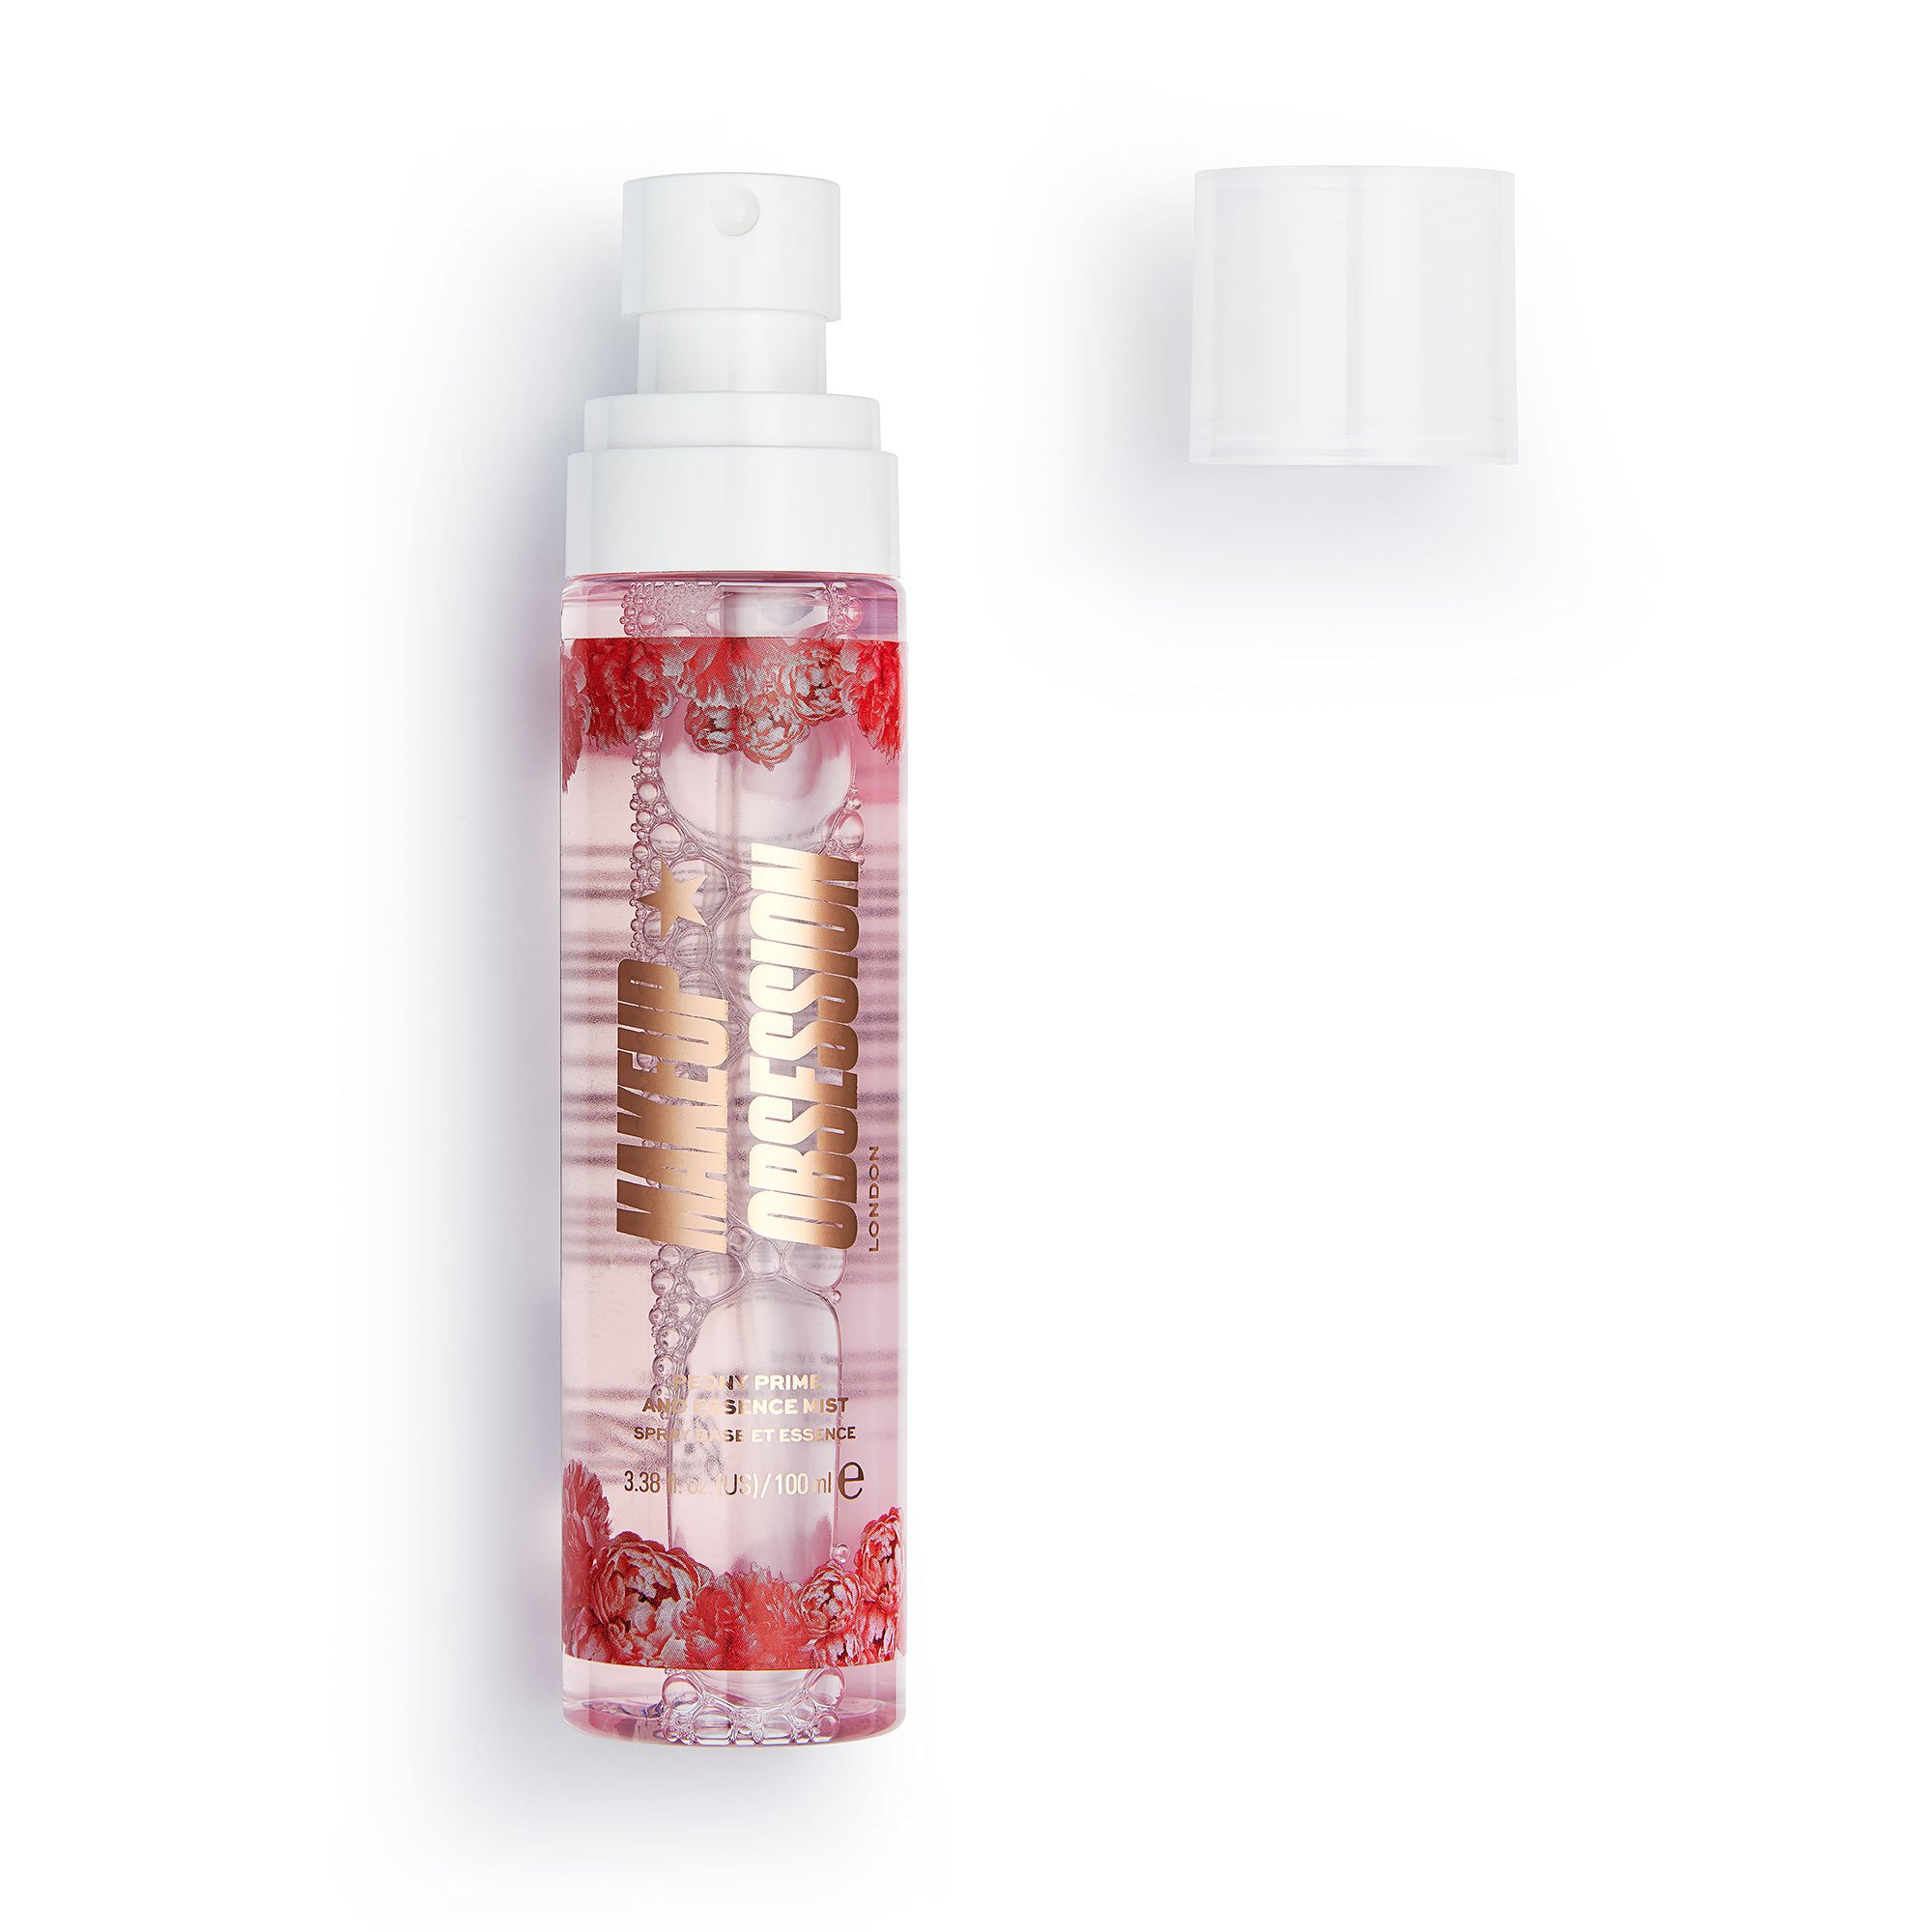 Makeup Obsession Peony Prime and Essence Spray